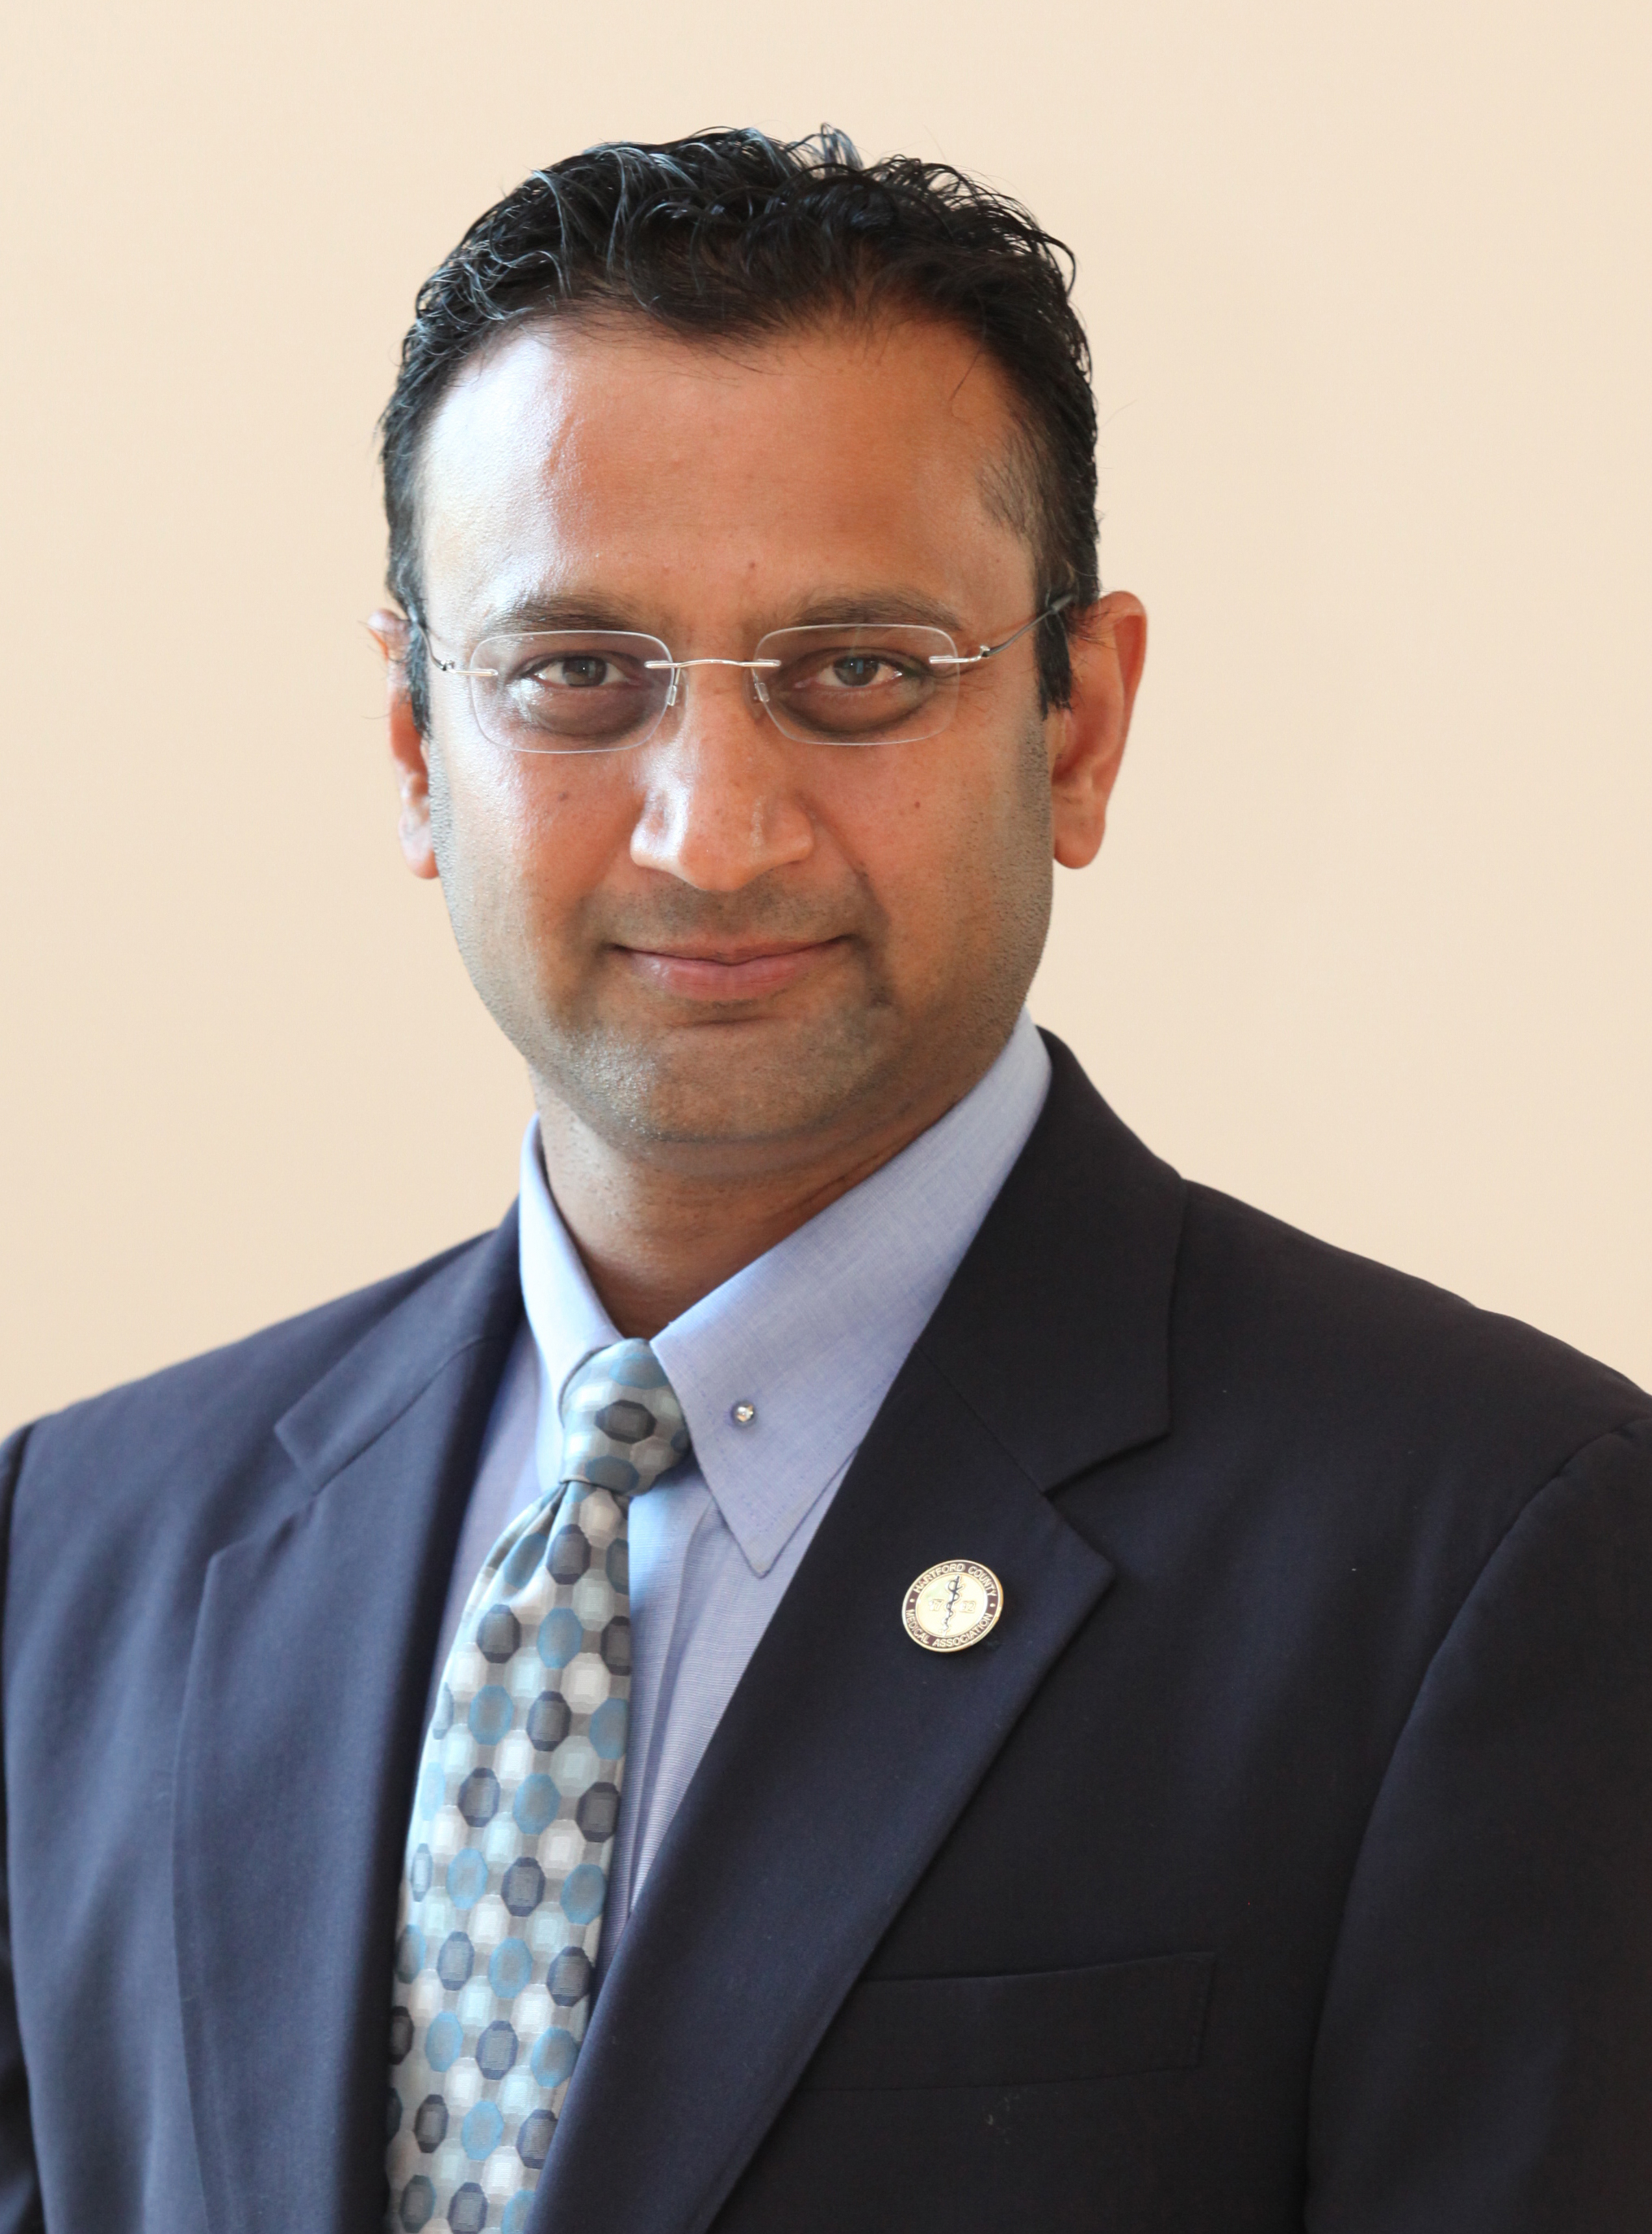 Sarit M. Patel, MD